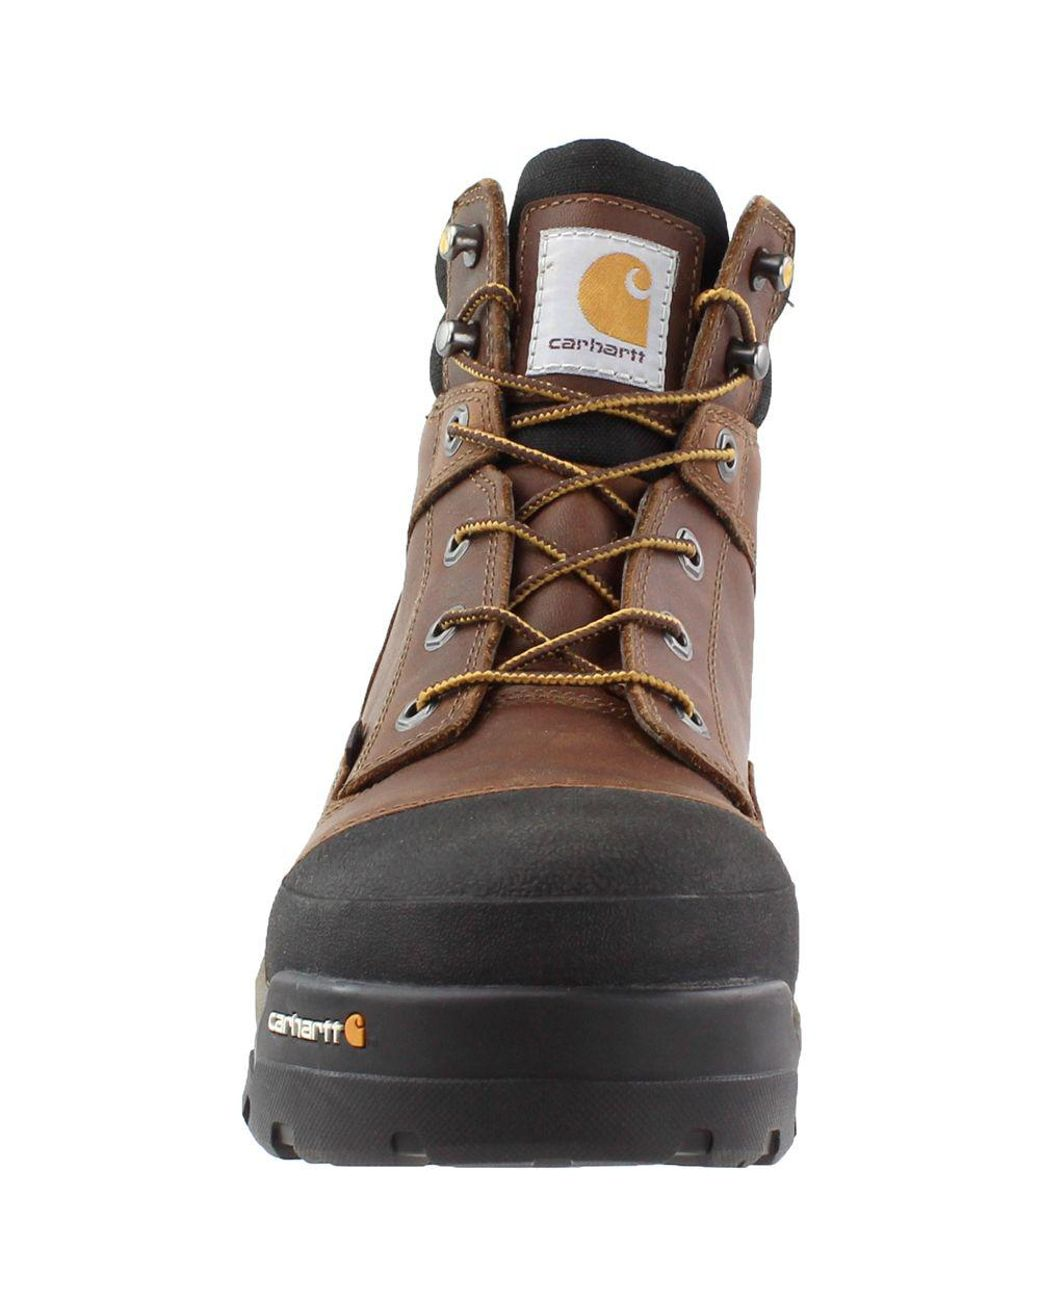 78203dcb6c Carhartt Ground Force 6 Inch Waterproof Composite Toe Work Boot in Brown  for Men - Lyst